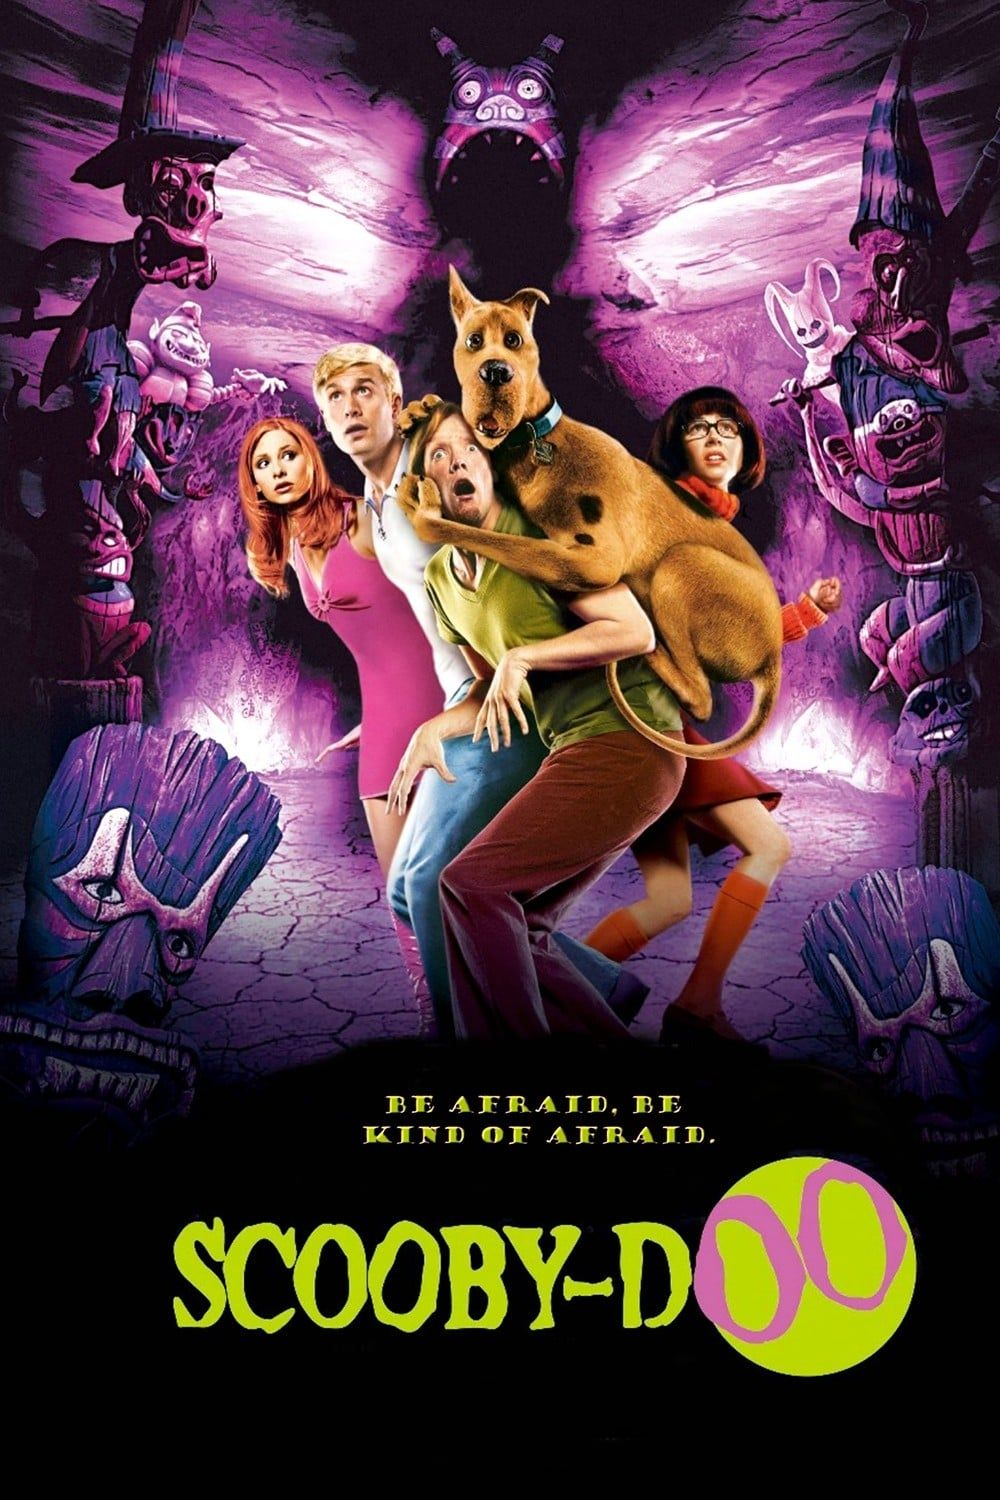 scooby doo animated movies in tamil free download